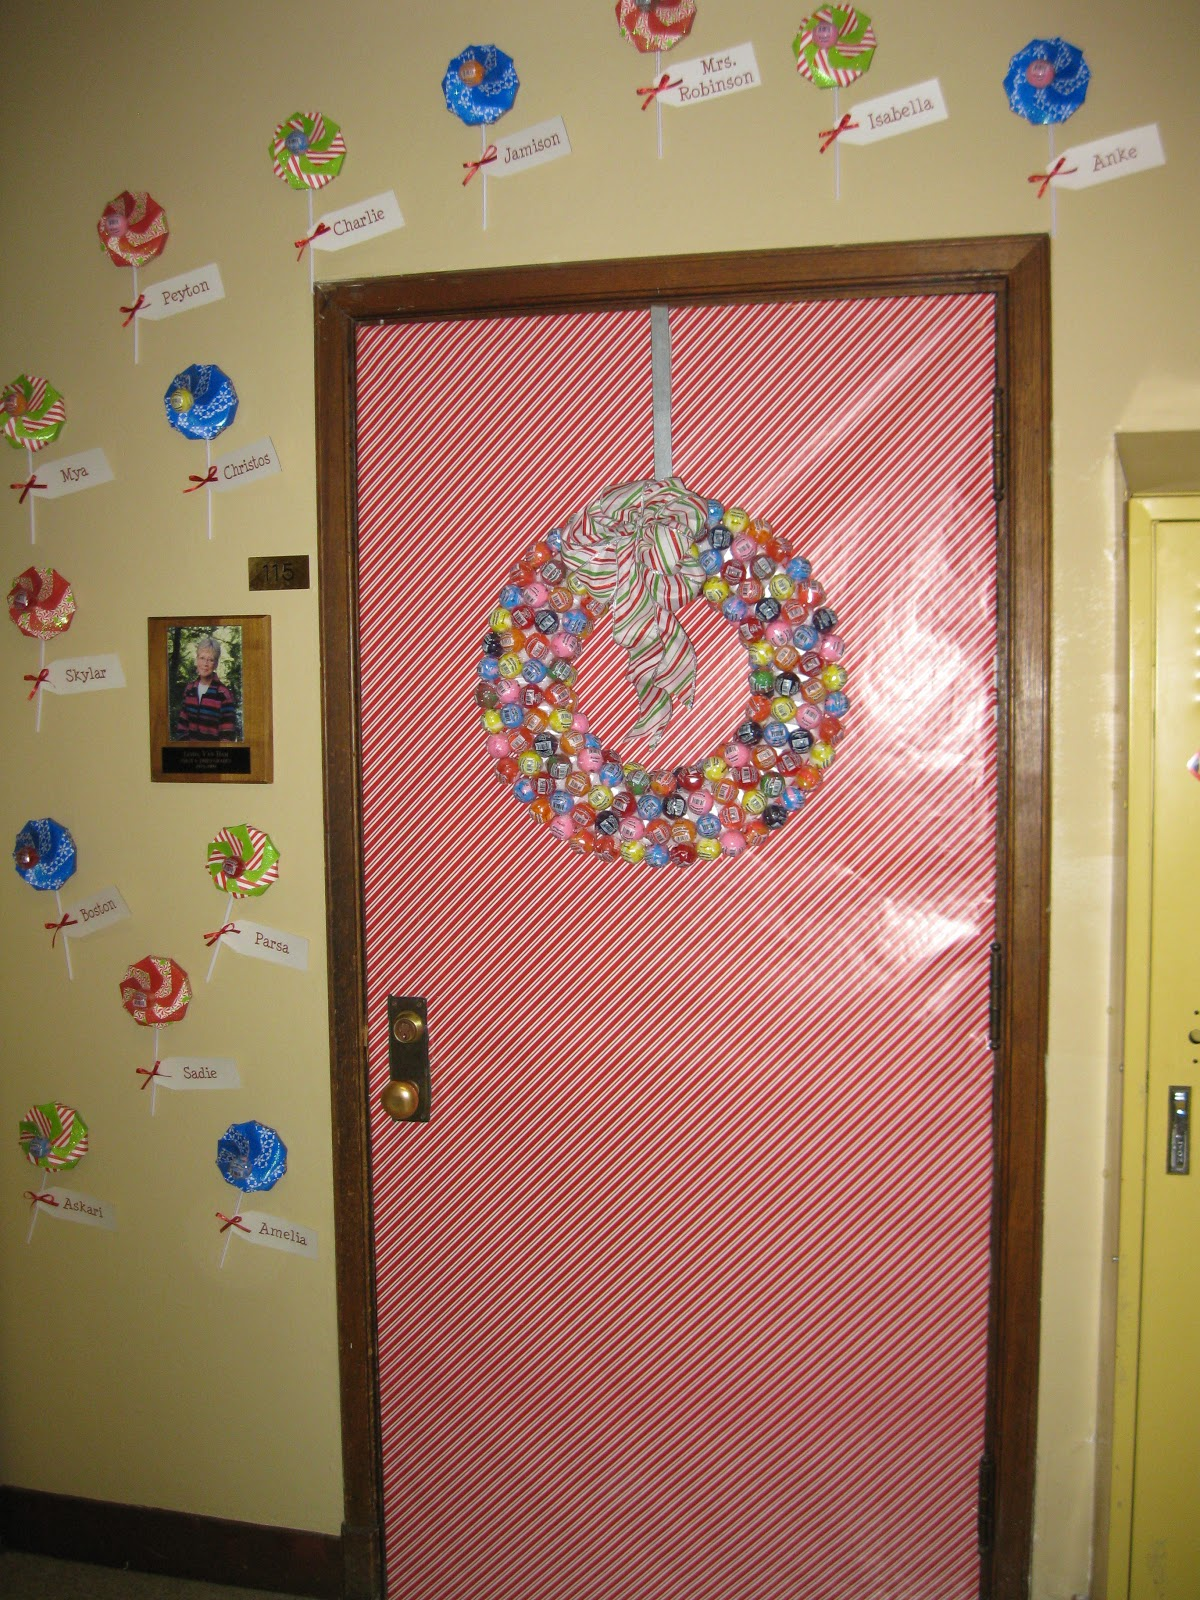 Creative Classroom Door Decorations ~ Holiday door decorations for classrooms and creative but